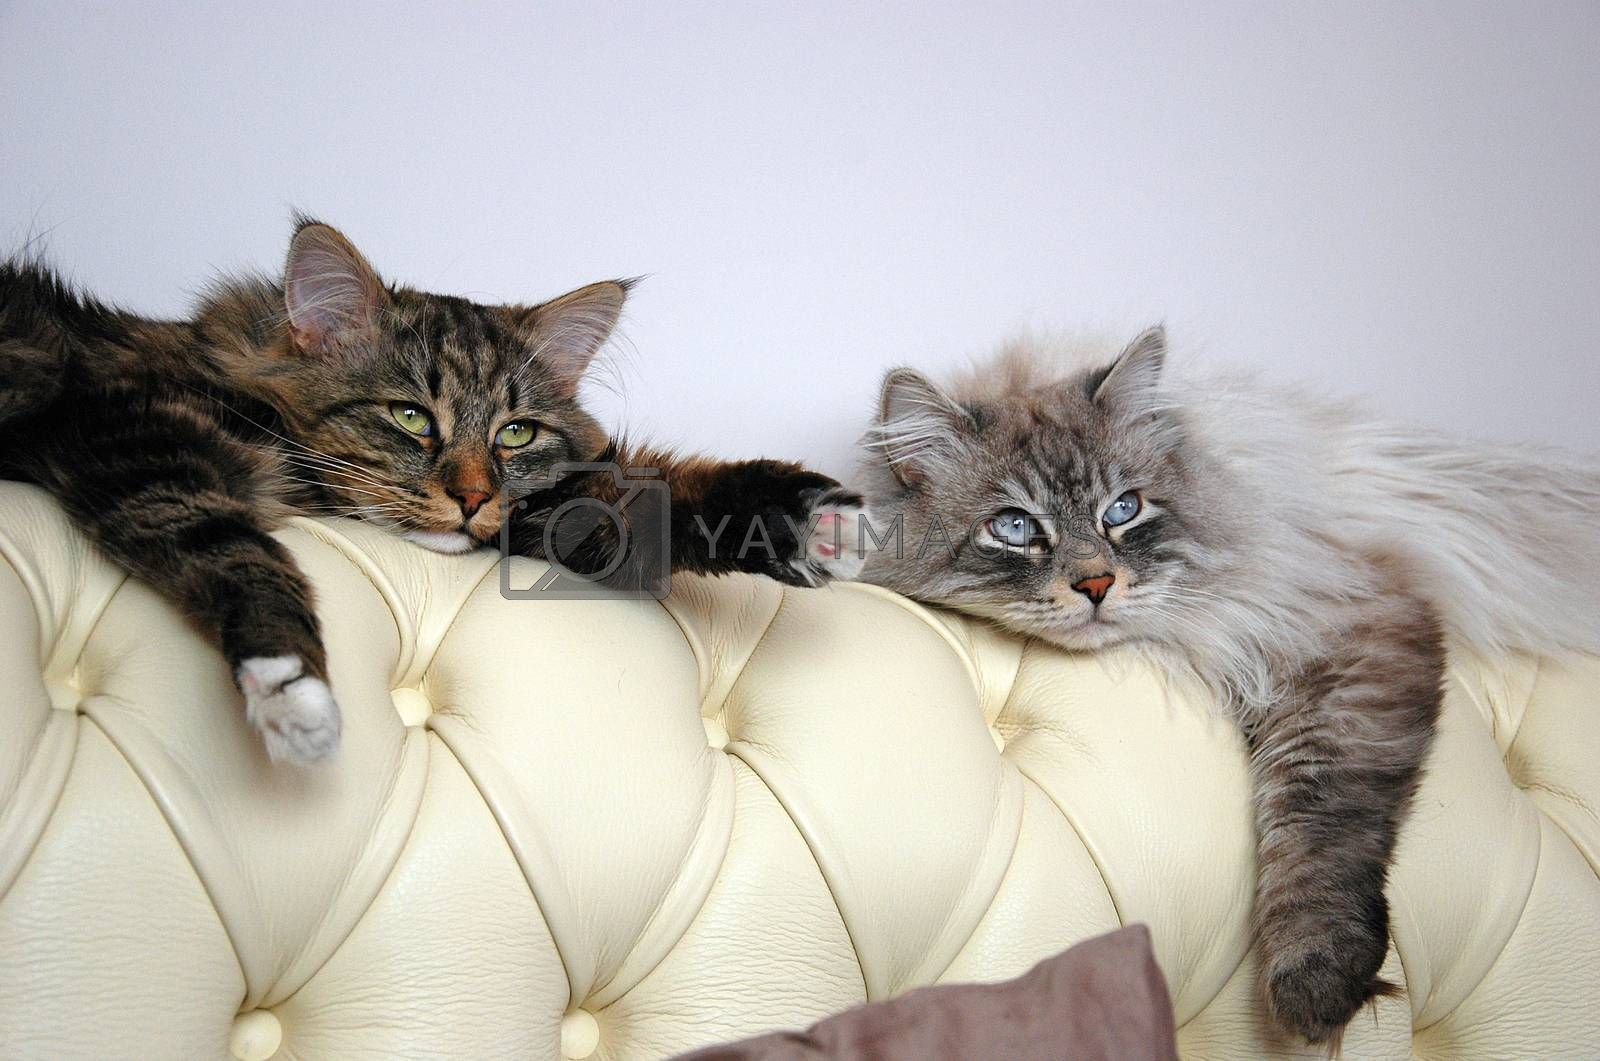 Cats, the lovely a fluffy a pets.